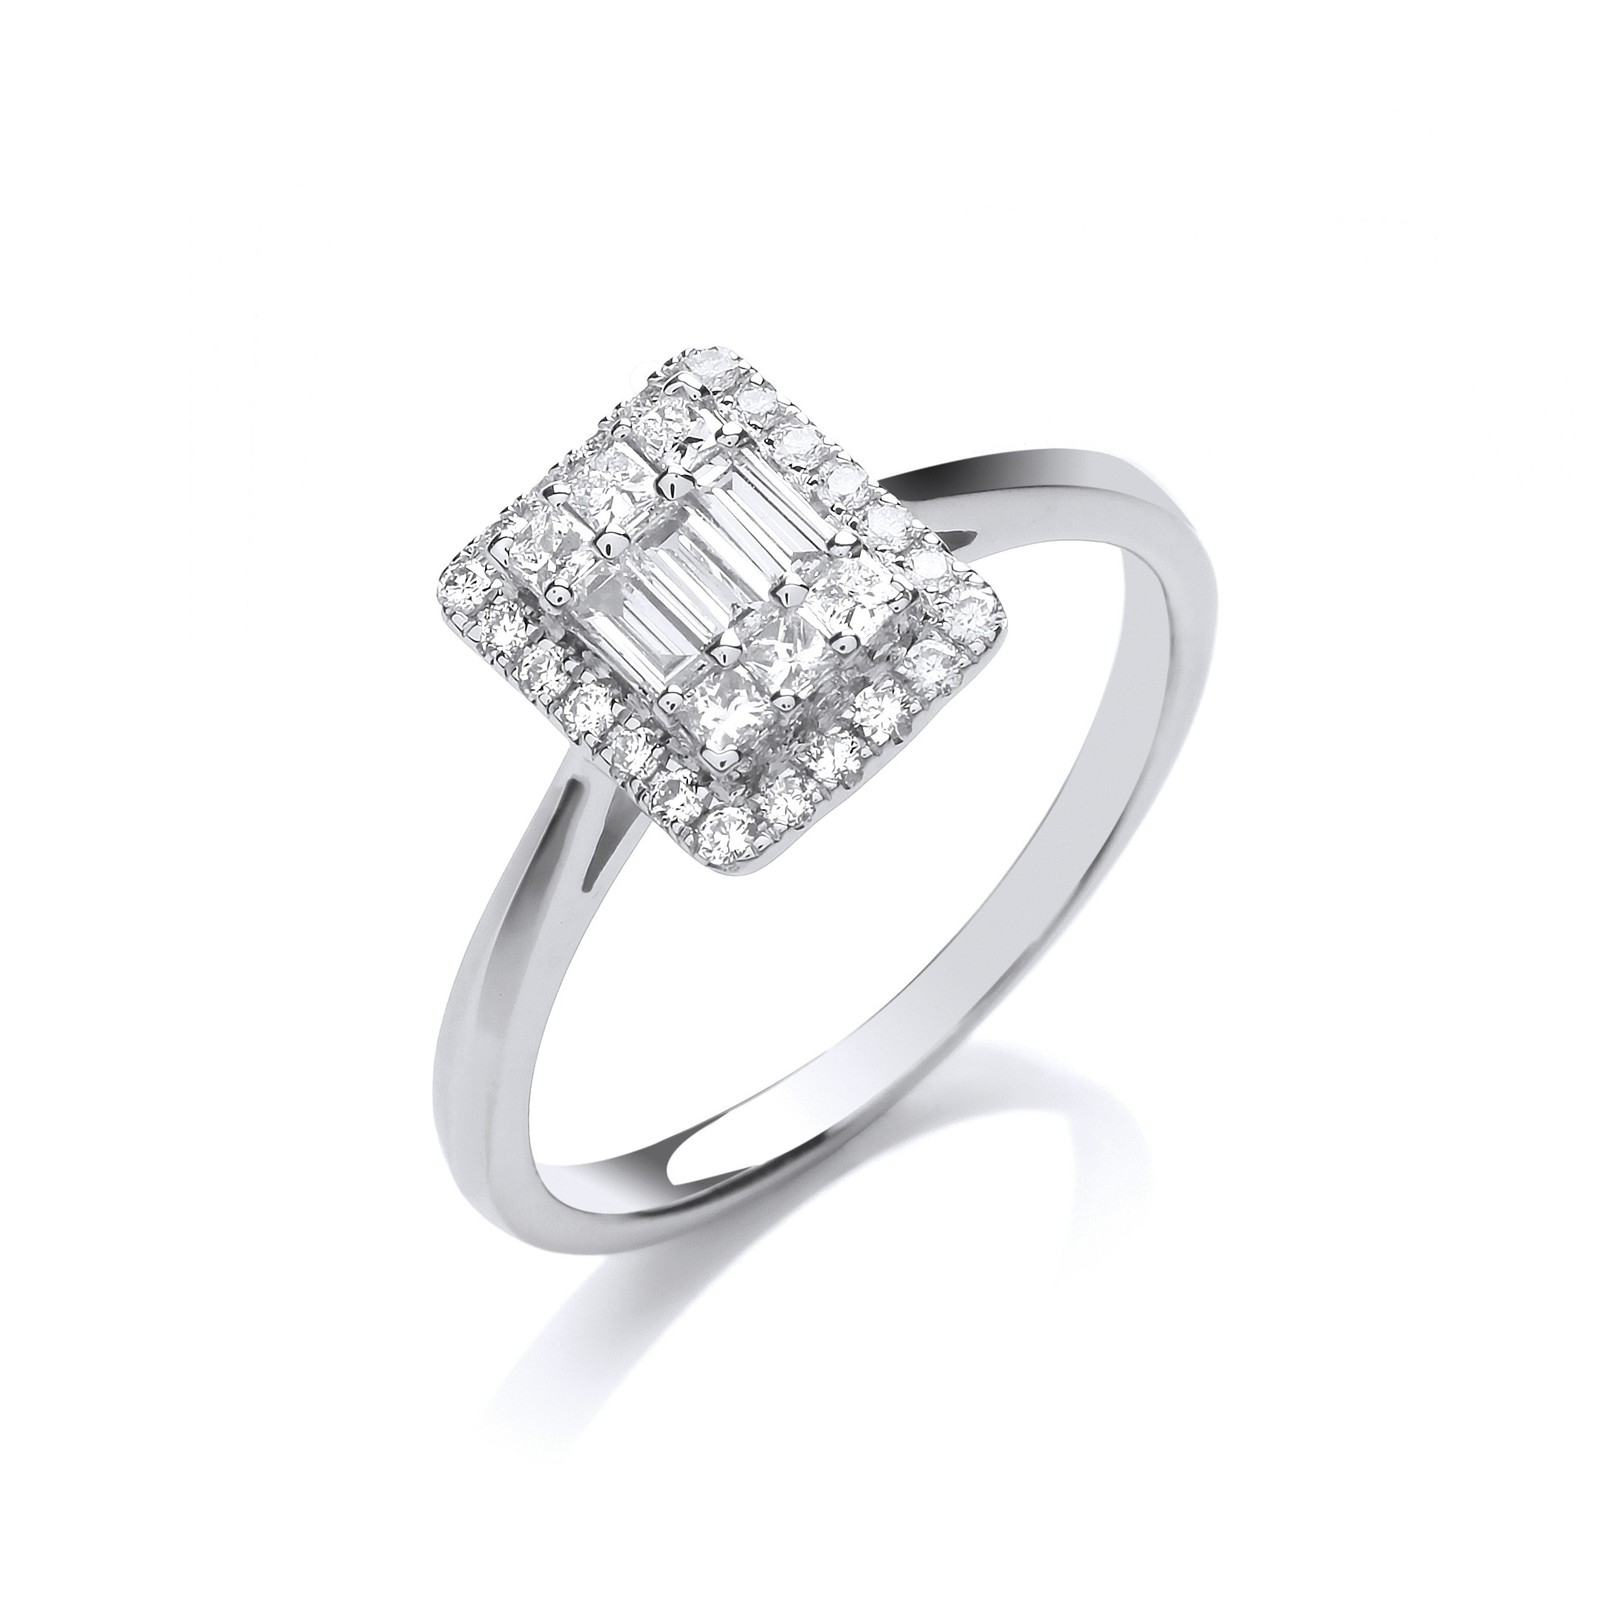 18ct White Gold 0.50ctw Rectangular Halo Style Ring